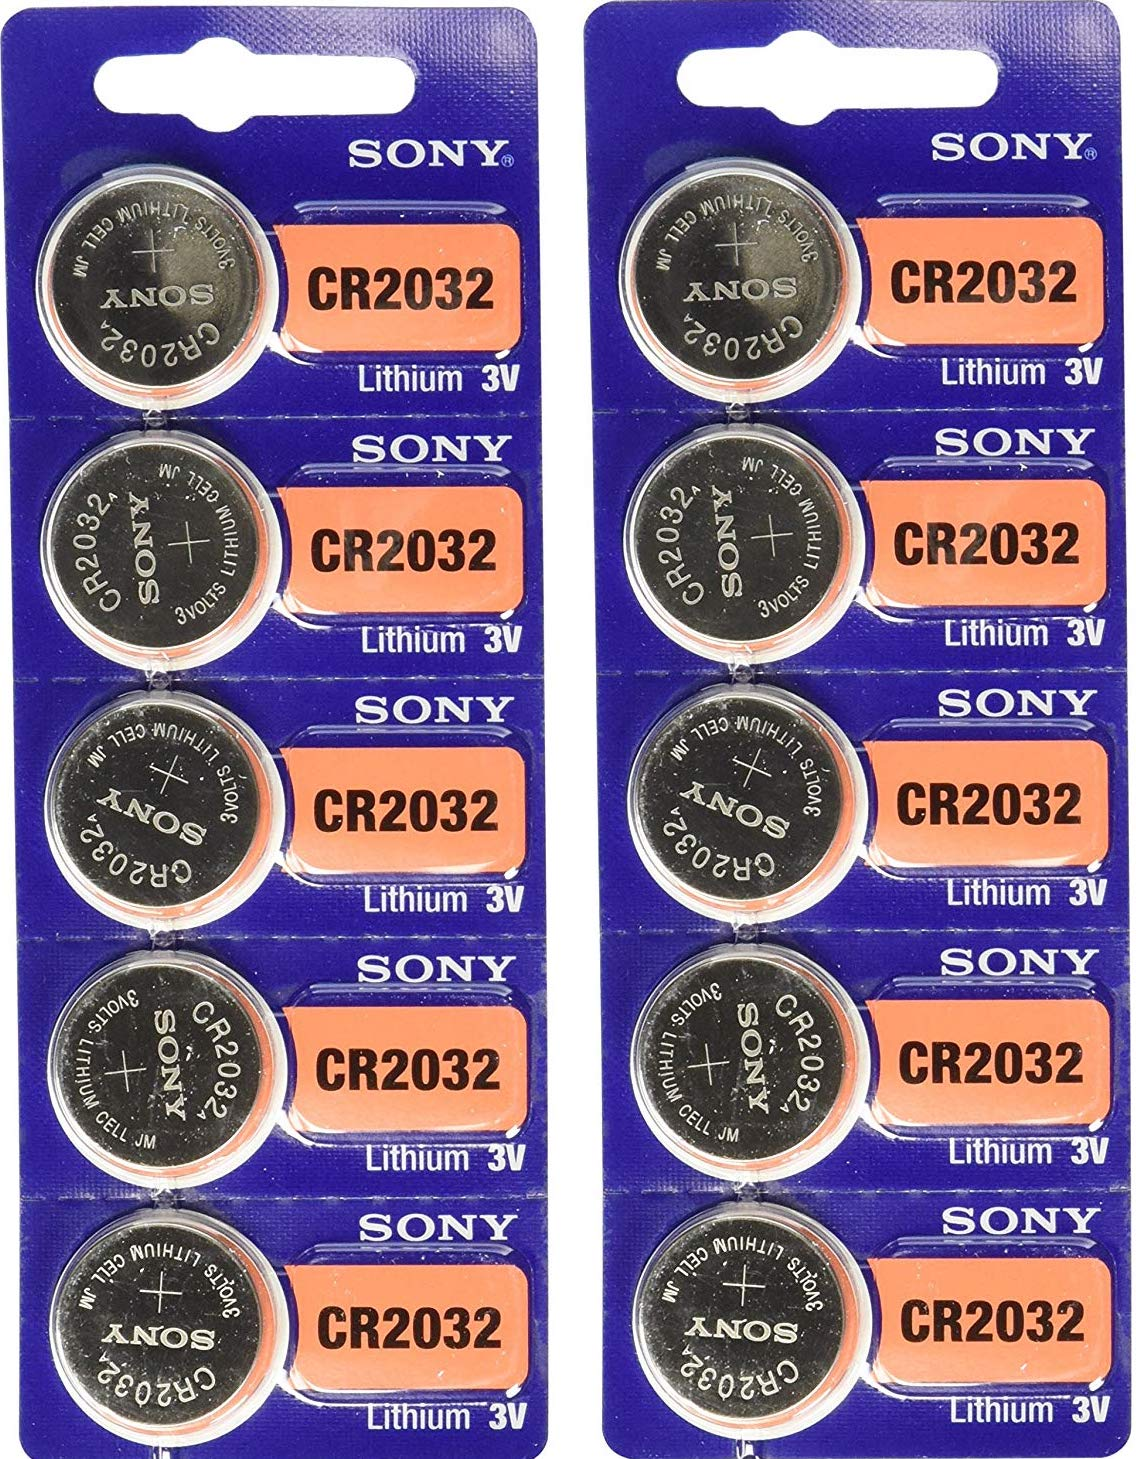 sony-cr2032-batteries-render-cropped